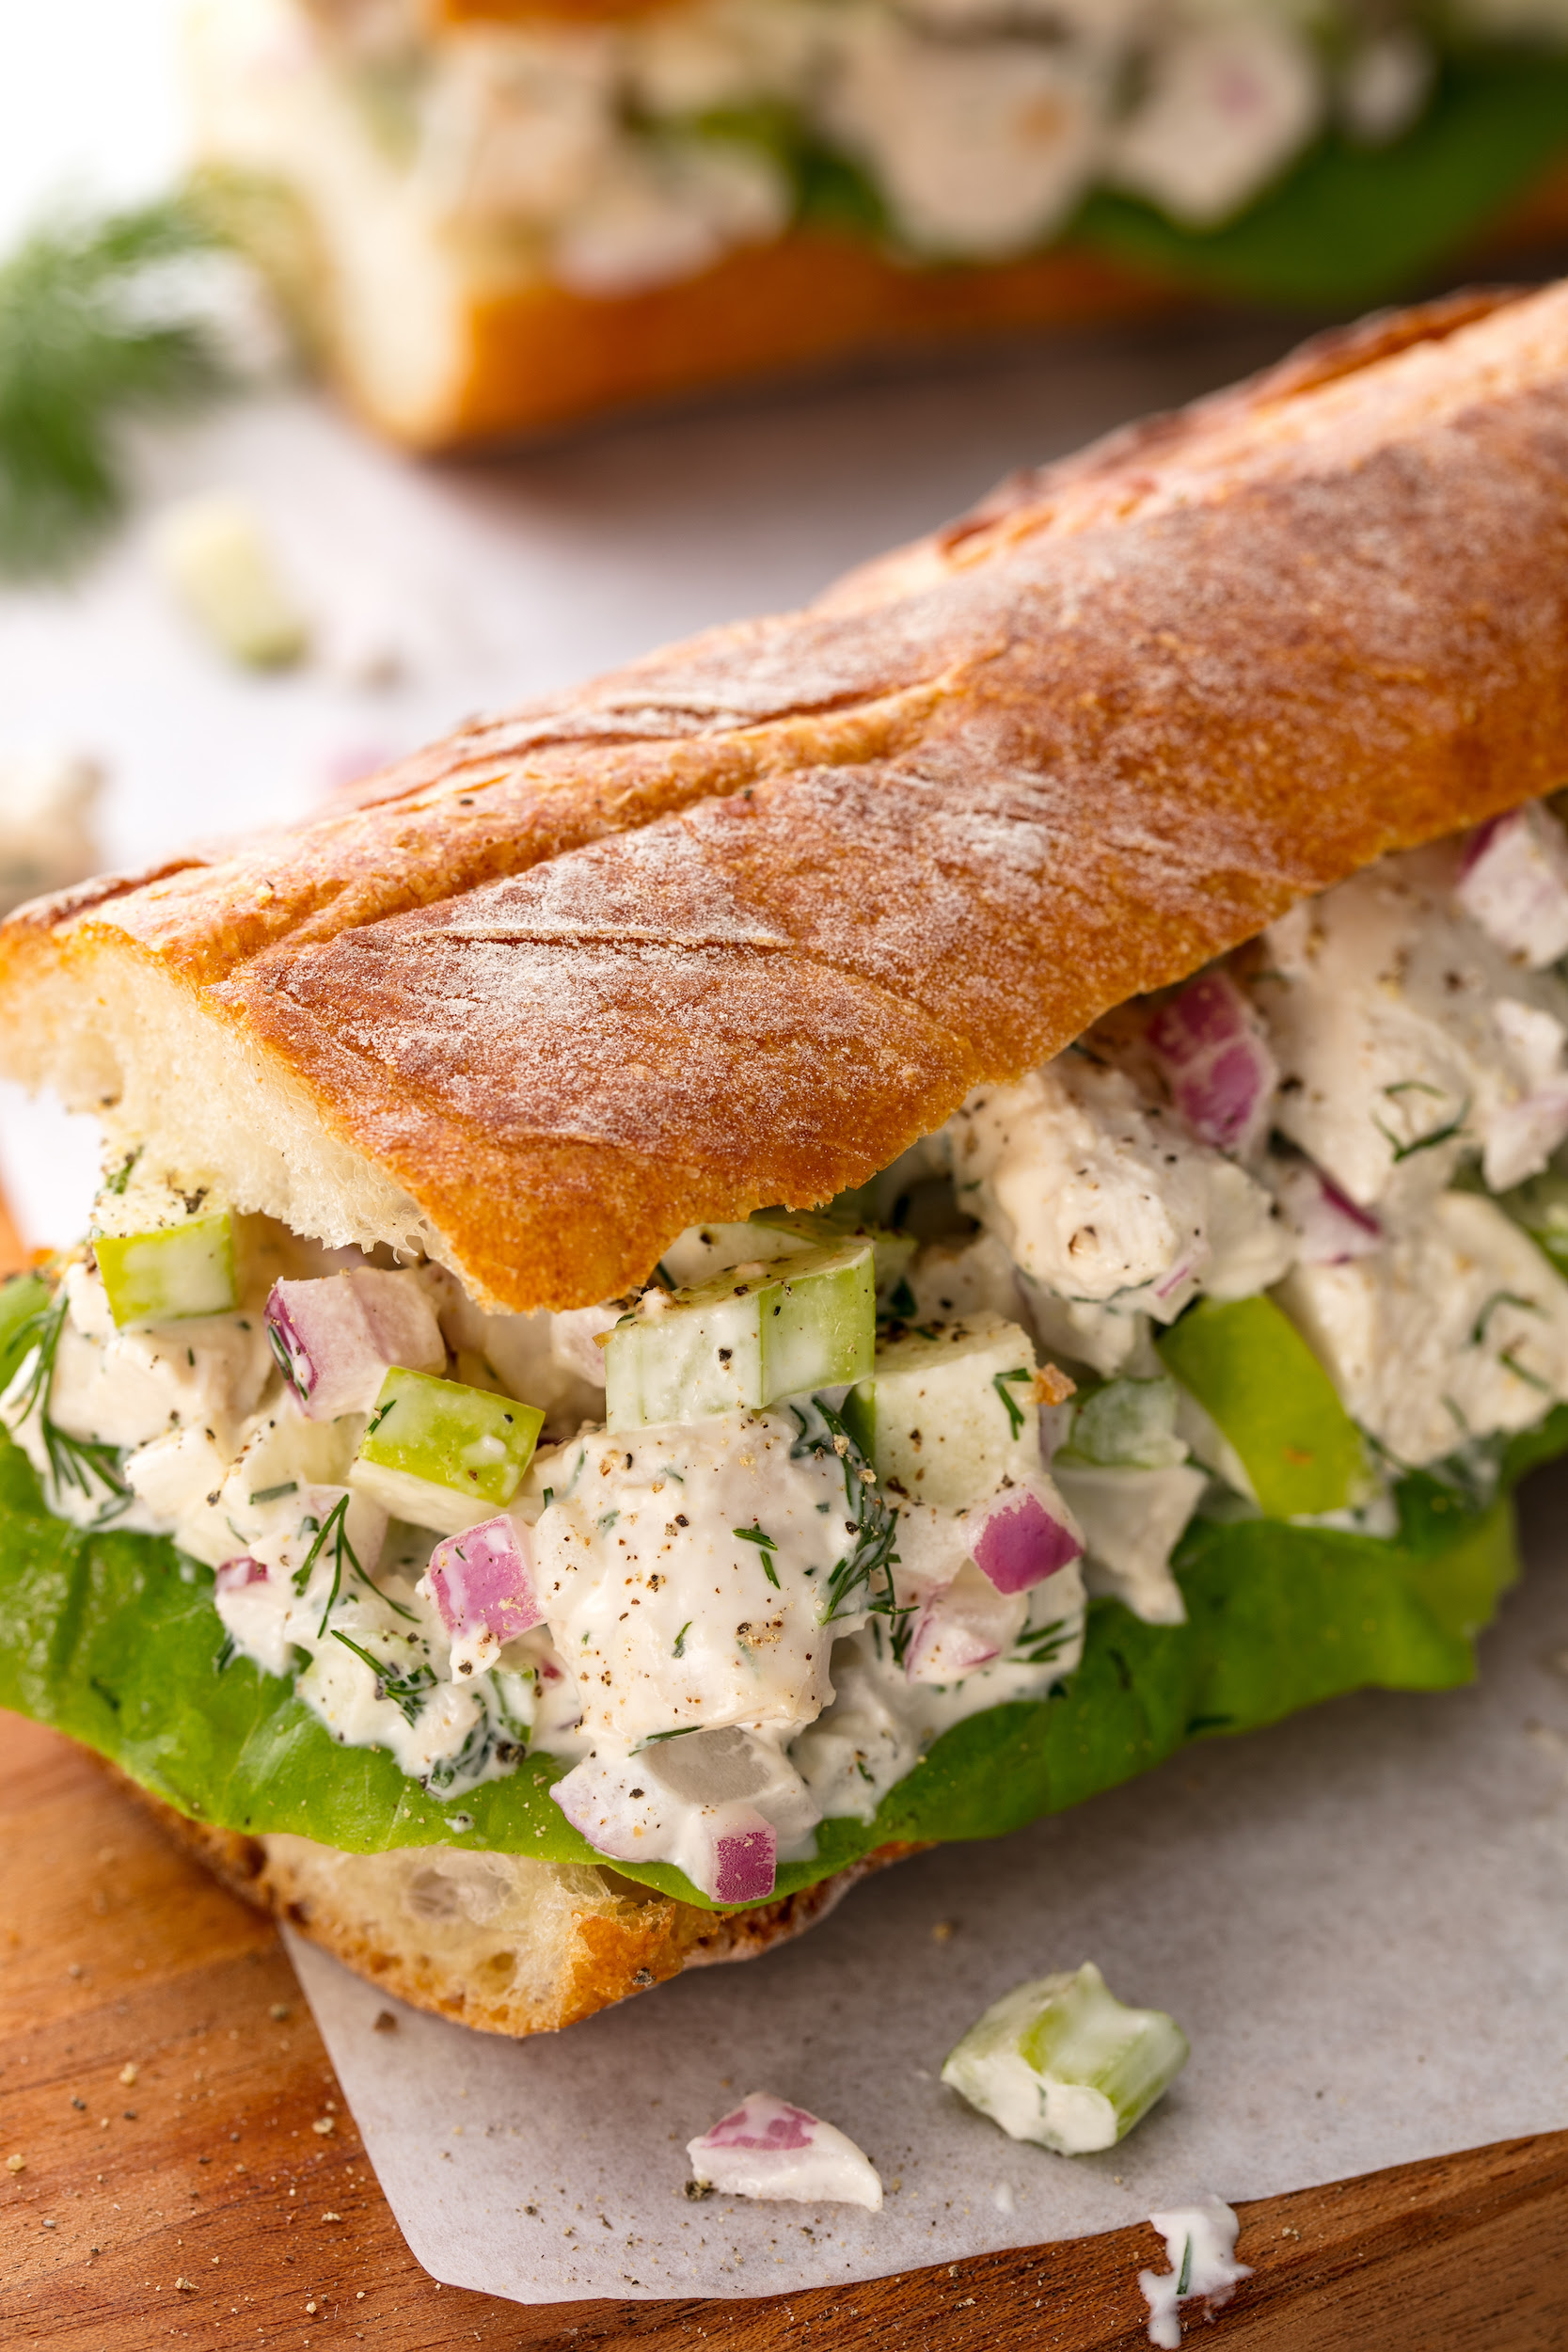 13 Easy Chicken Salad Recipes - How to Make the Best ...